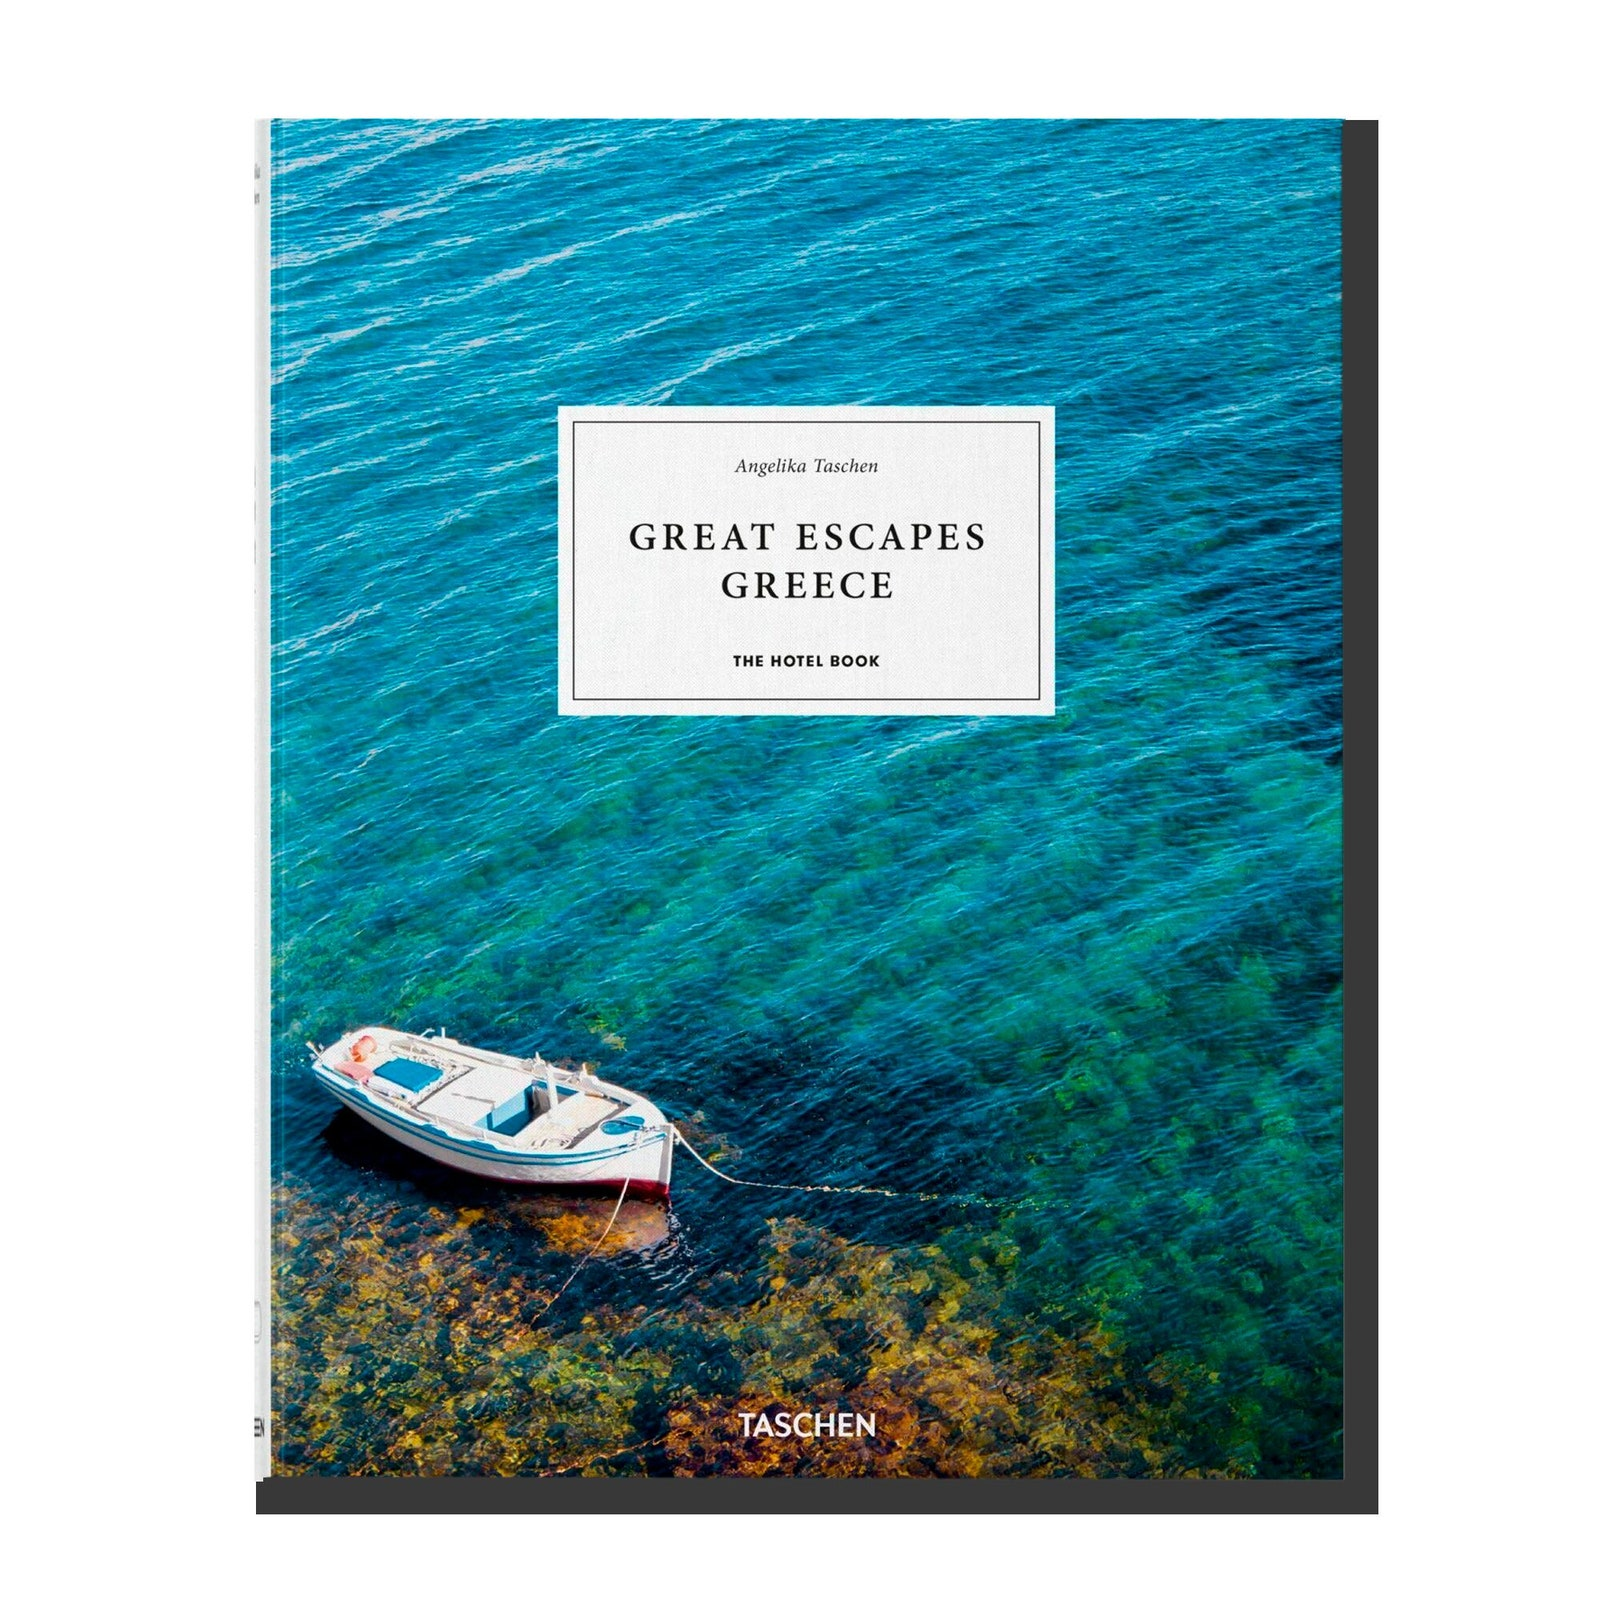 Great Escapes Greece The Hotel Book 3563 .